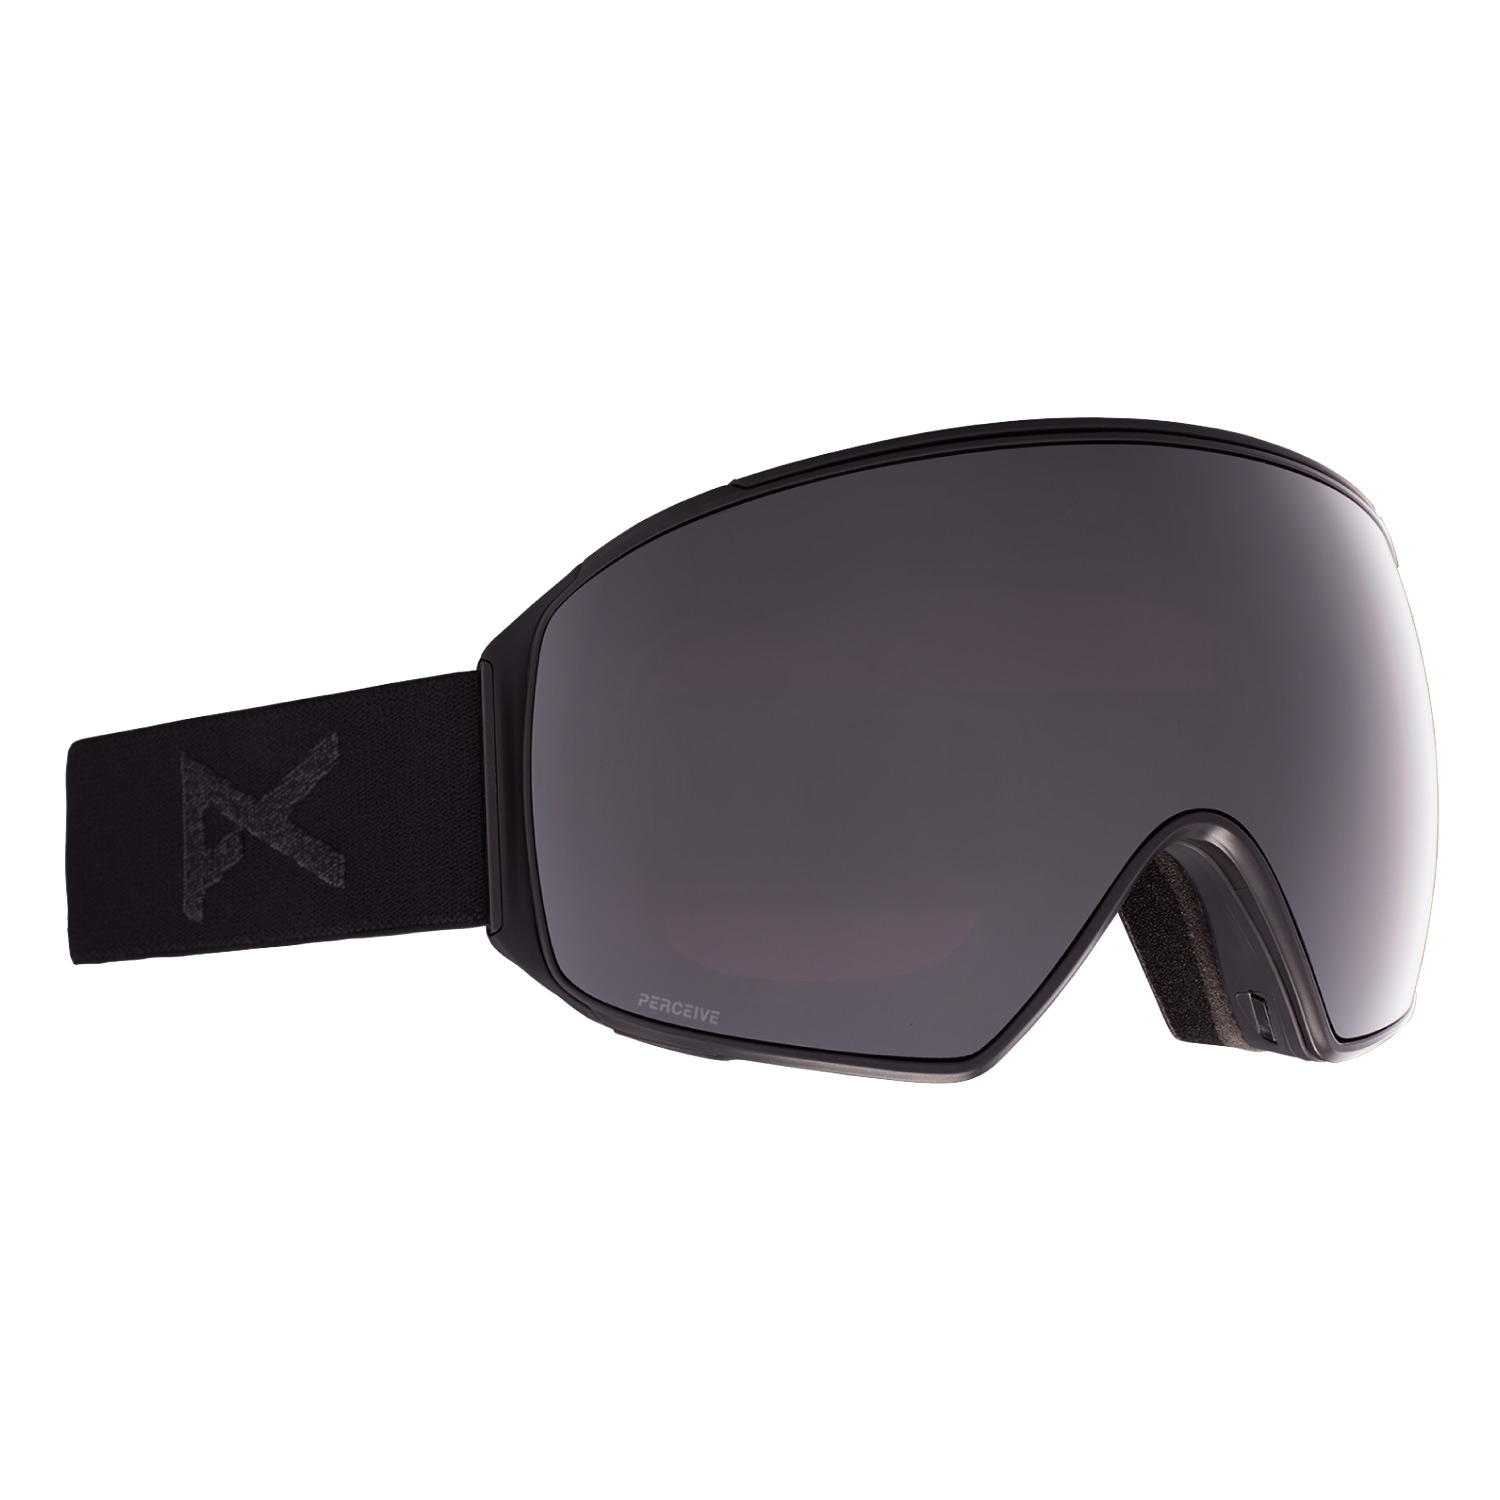 Anon M4 Goggles Toric Smoke/Perceive Sun Onyx Lens 2021